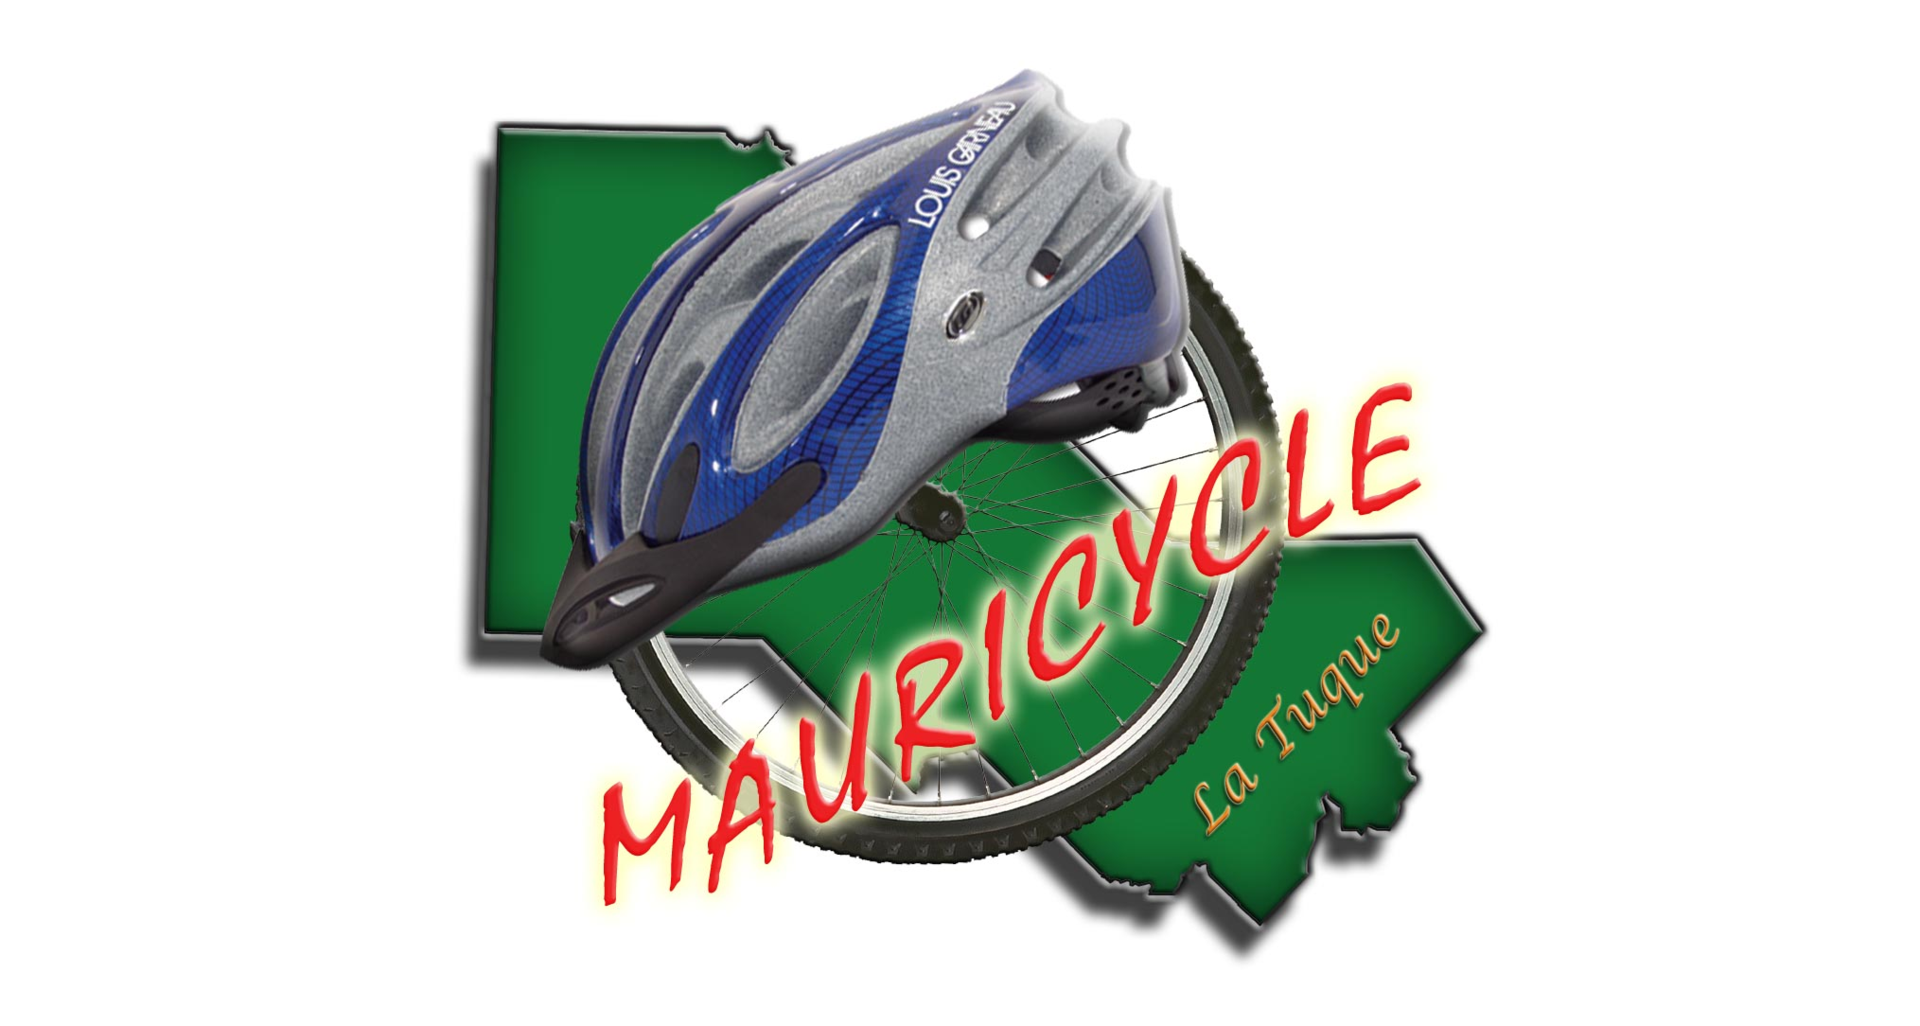 Mauricycle La Tuque